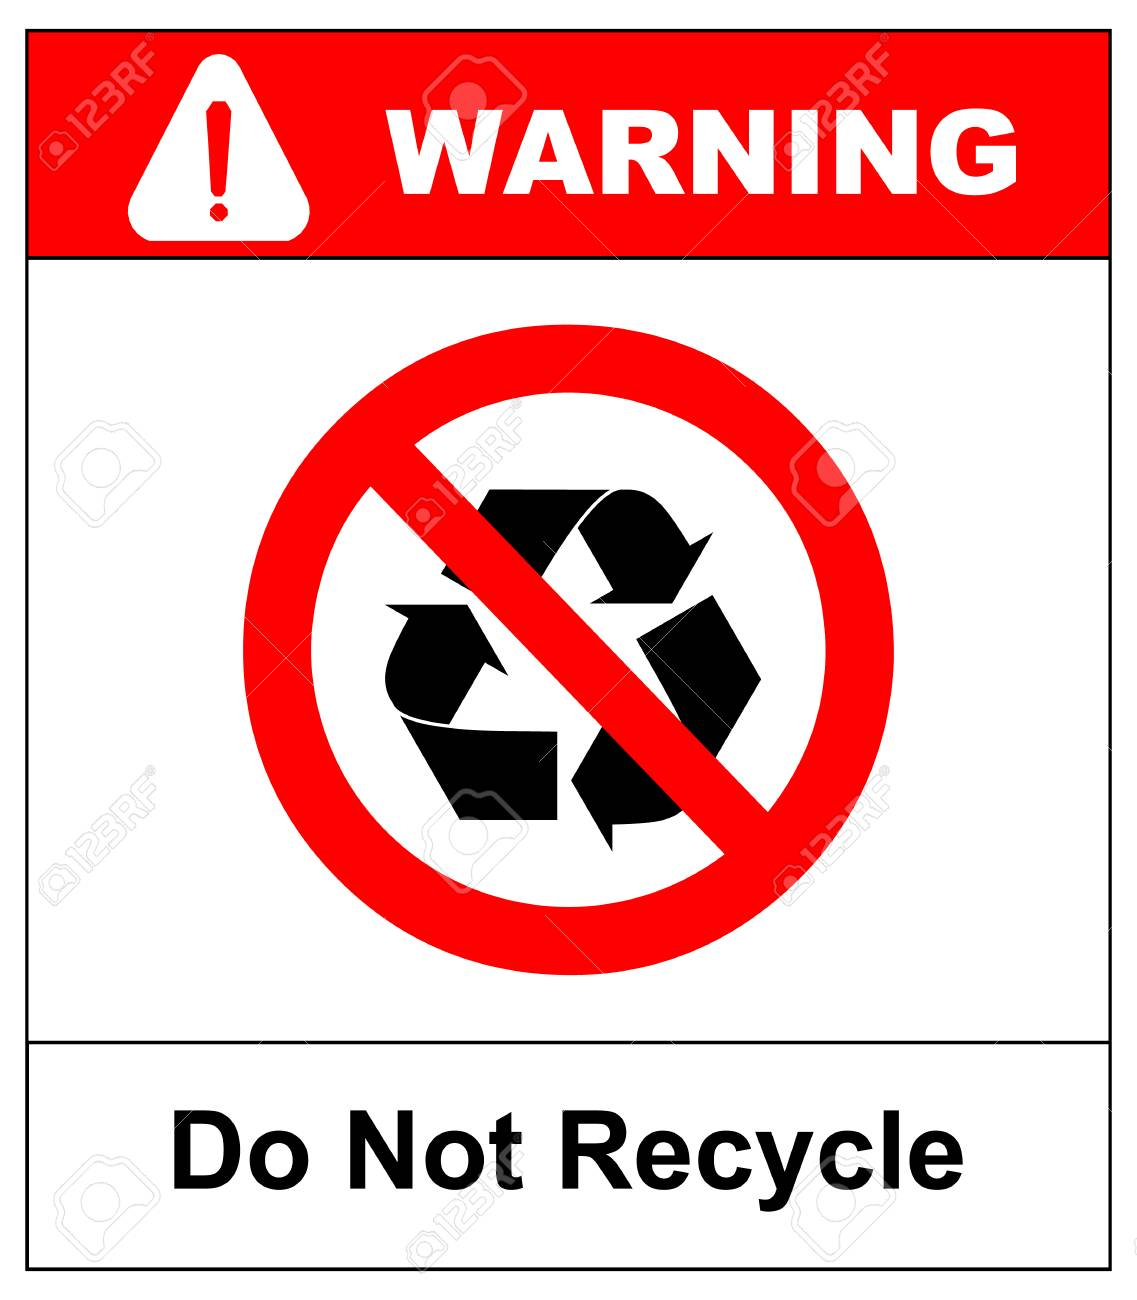 Do Not Recycle Symbol No Recycle Label Recycle Prohibition